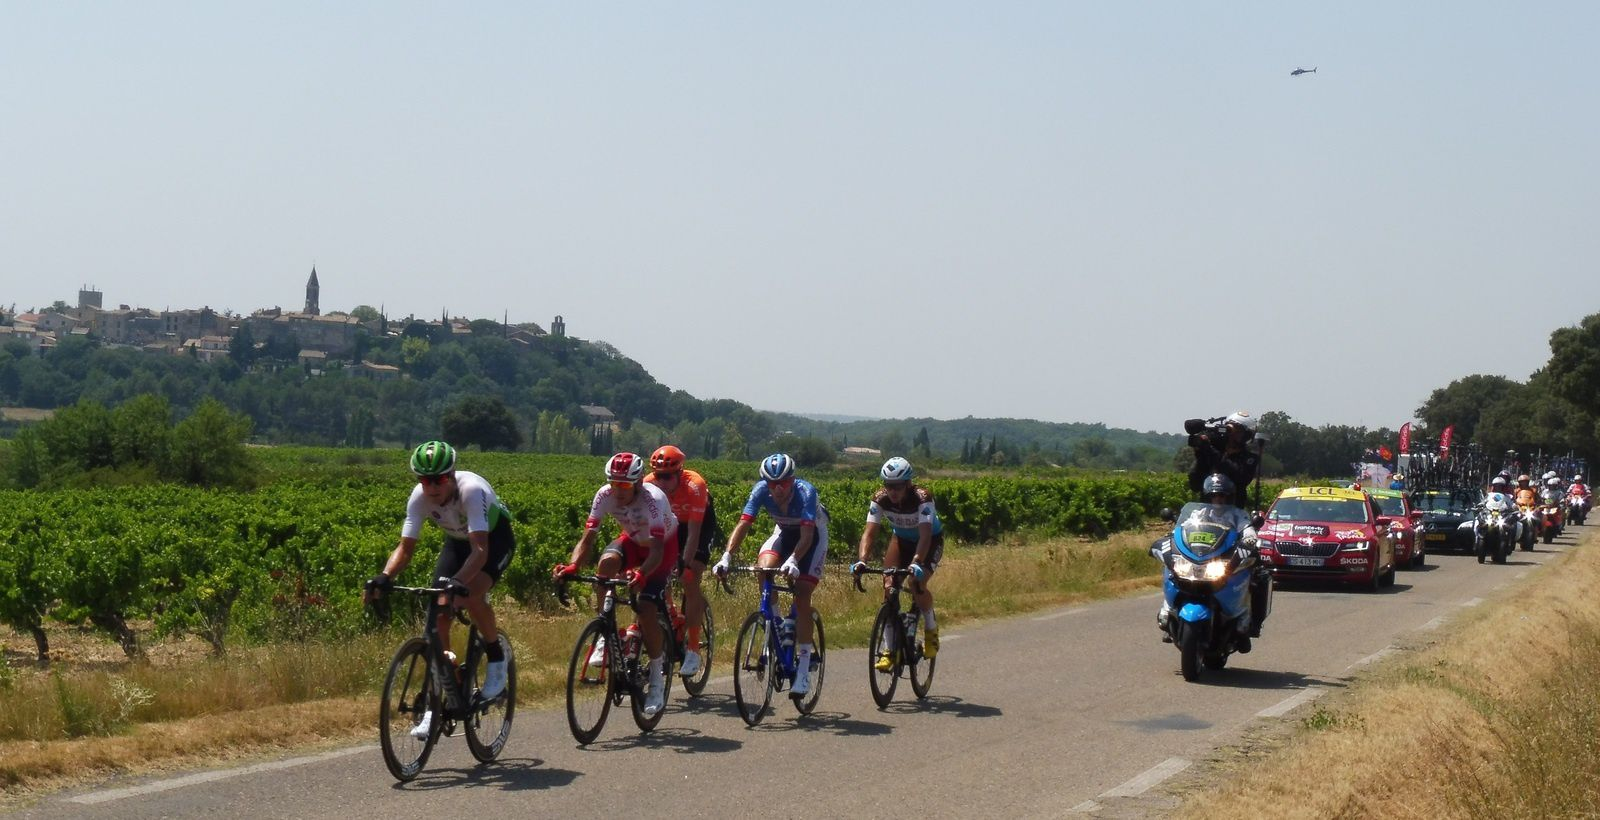 Le Tour de France 2019 à Castillon du Gard.